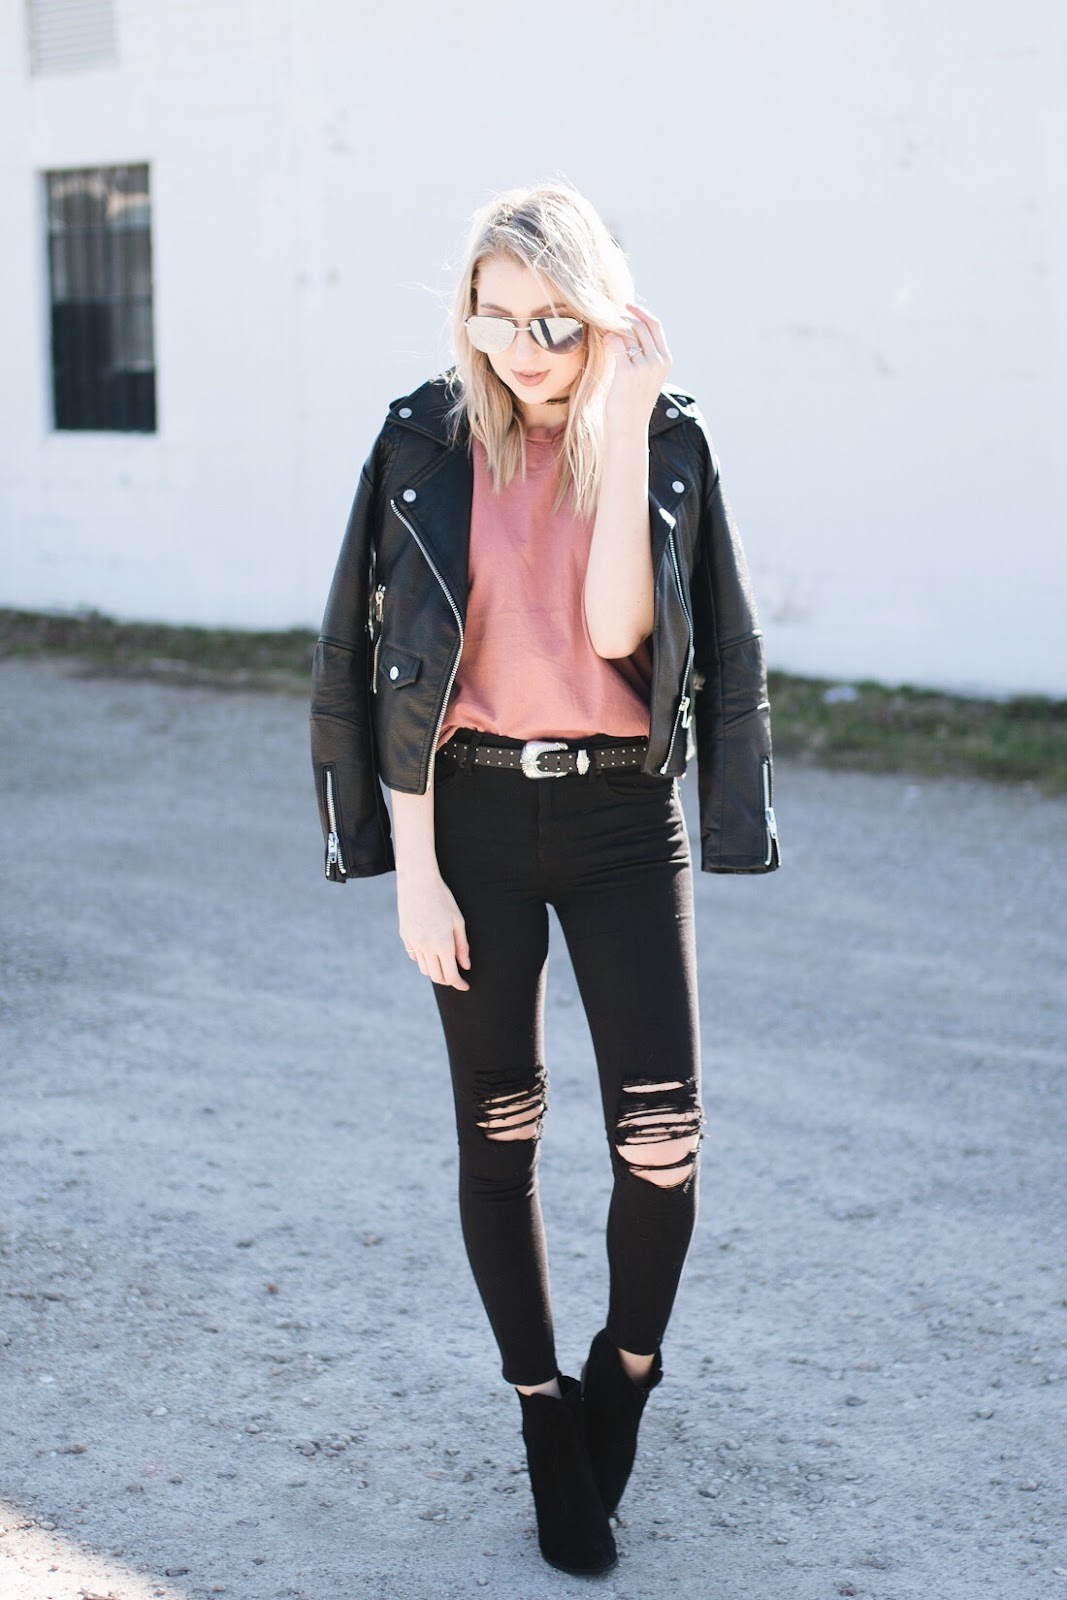 Dusty rose paired with all-black